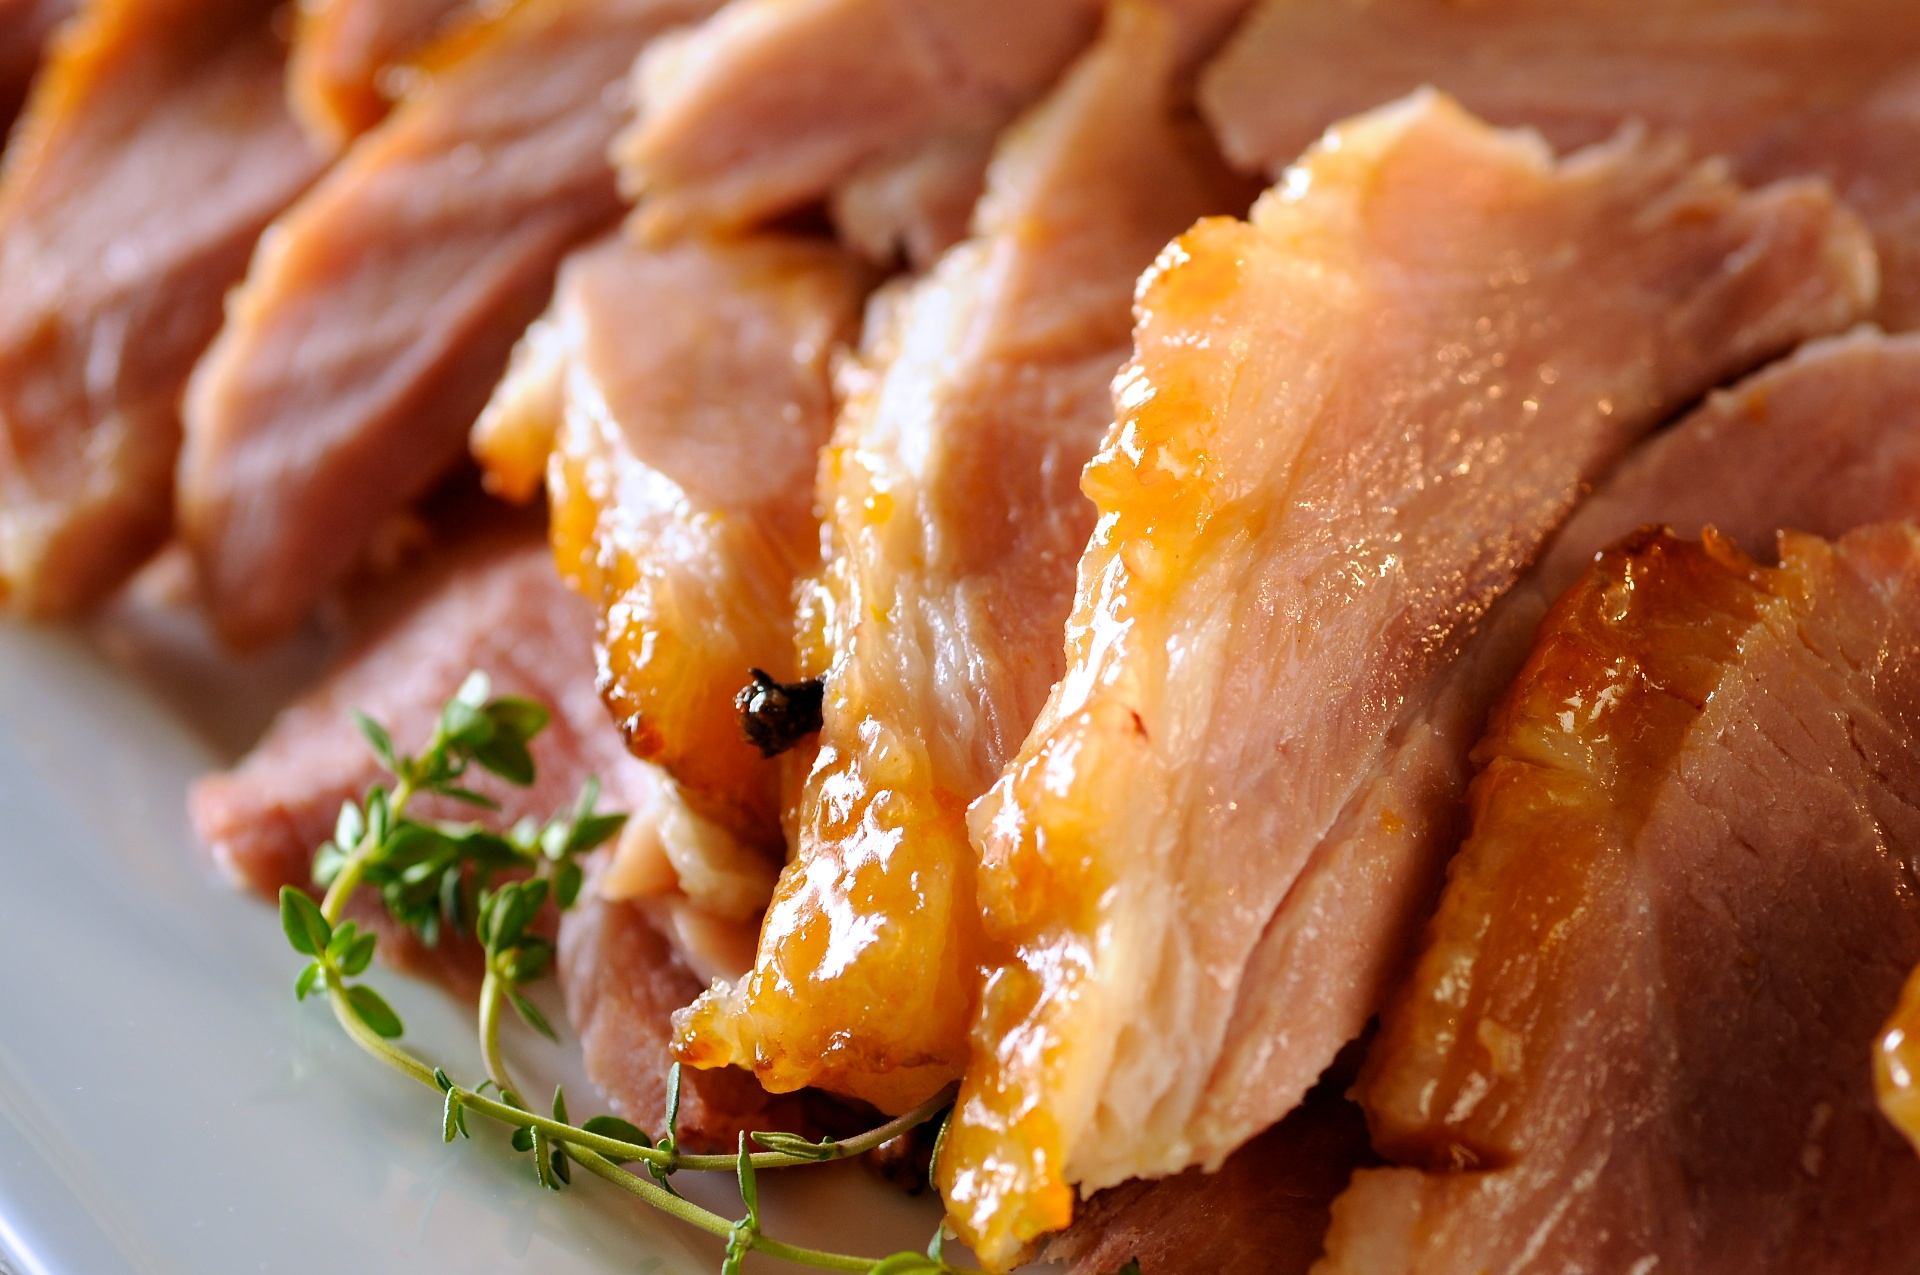 This caramelized brown sugar and apricot glazed ham is studded with whole cloves and will fill your kitchen with a wonderfully rich and spicy aroma.